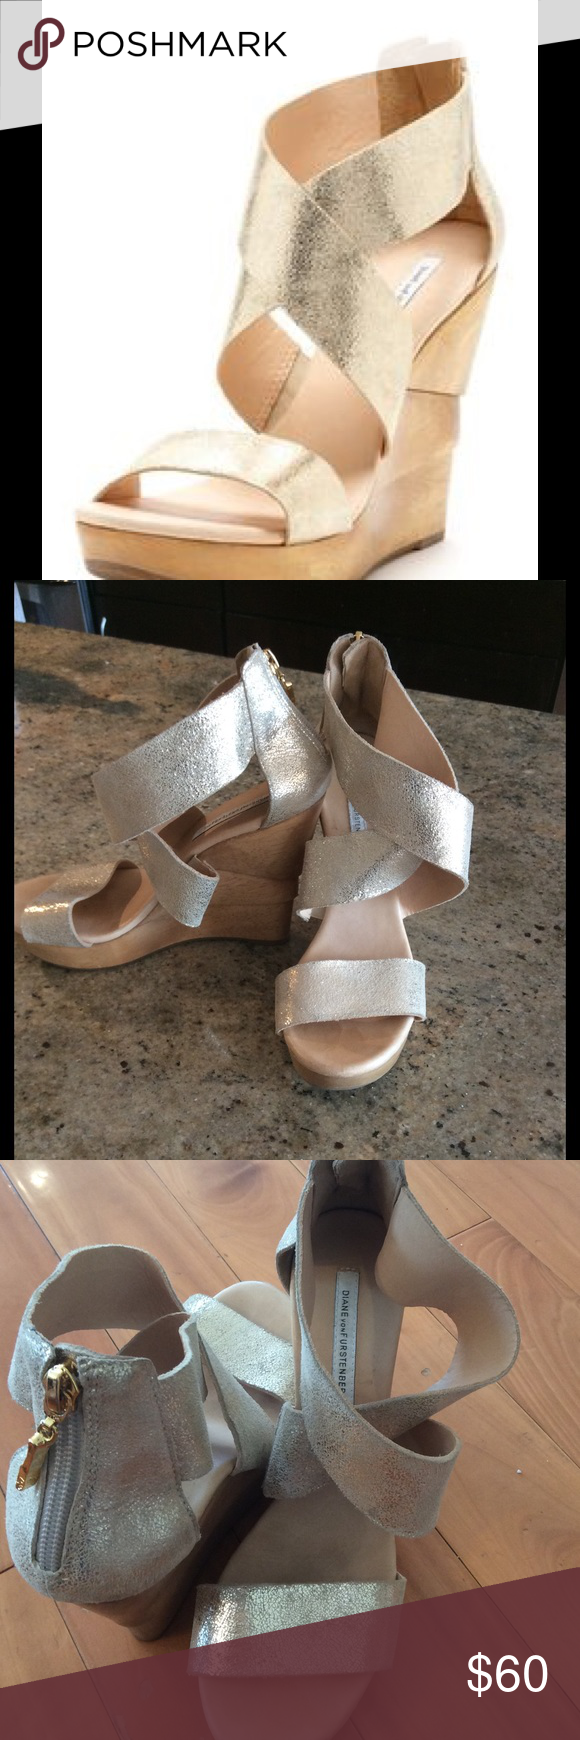 Gold Diane Von Frustenberg Opal Wedges Super cute gold wedges! EUC. Gold straps and wood wedge heel. Size 7.5 Diane von Furstenberg Shoes Wedges